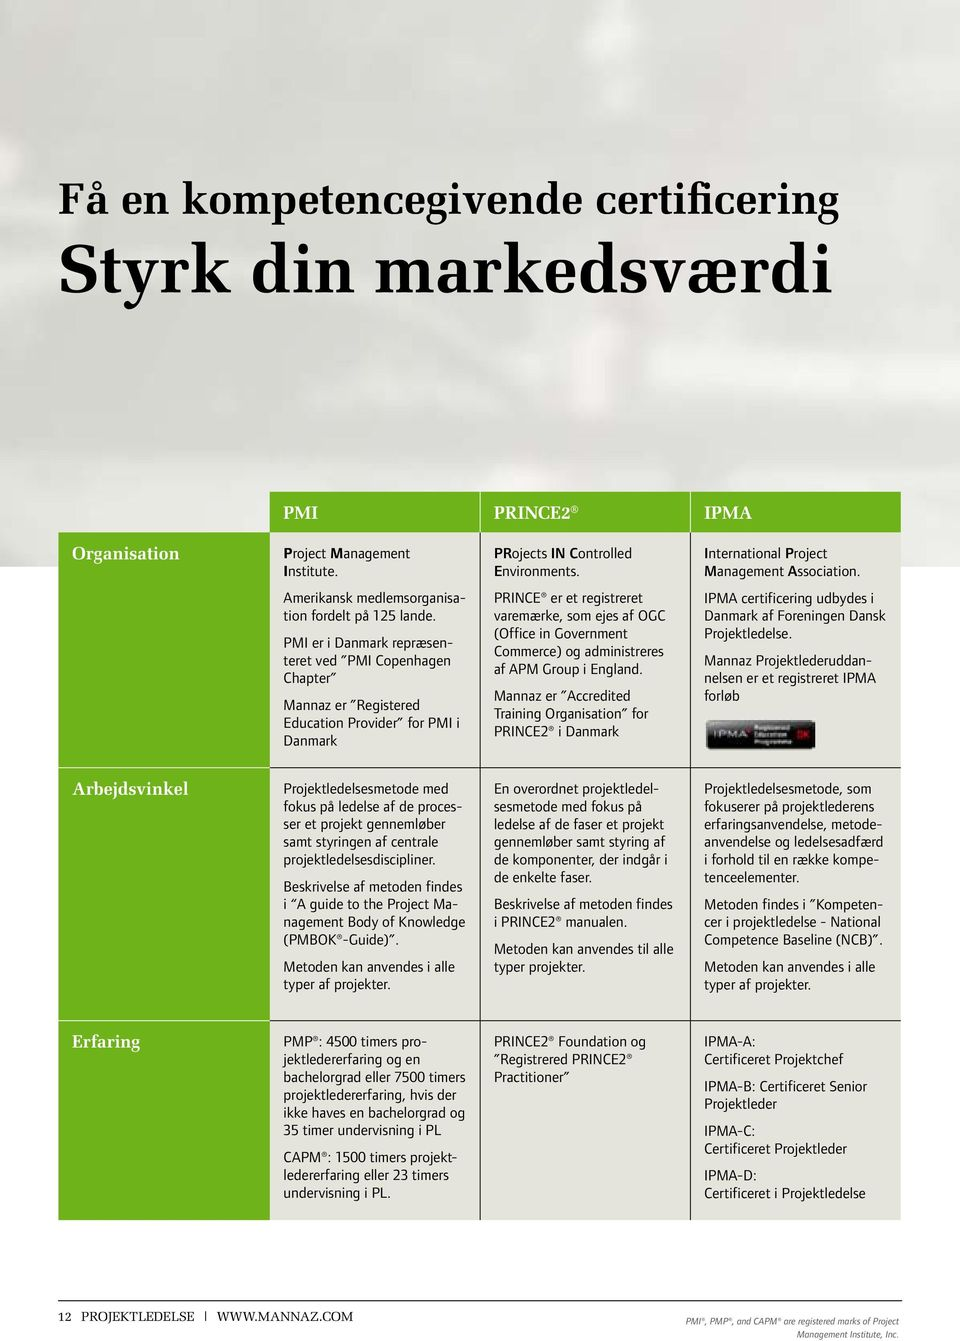 PMI er i Danmark repræsenteret ved PMI Copenhagen Chapter Mannaz er registered Education Provider for PMI i Danmark PrInCE er et registreret varemærke, som ejes af OGC (Office in Government Commerce)